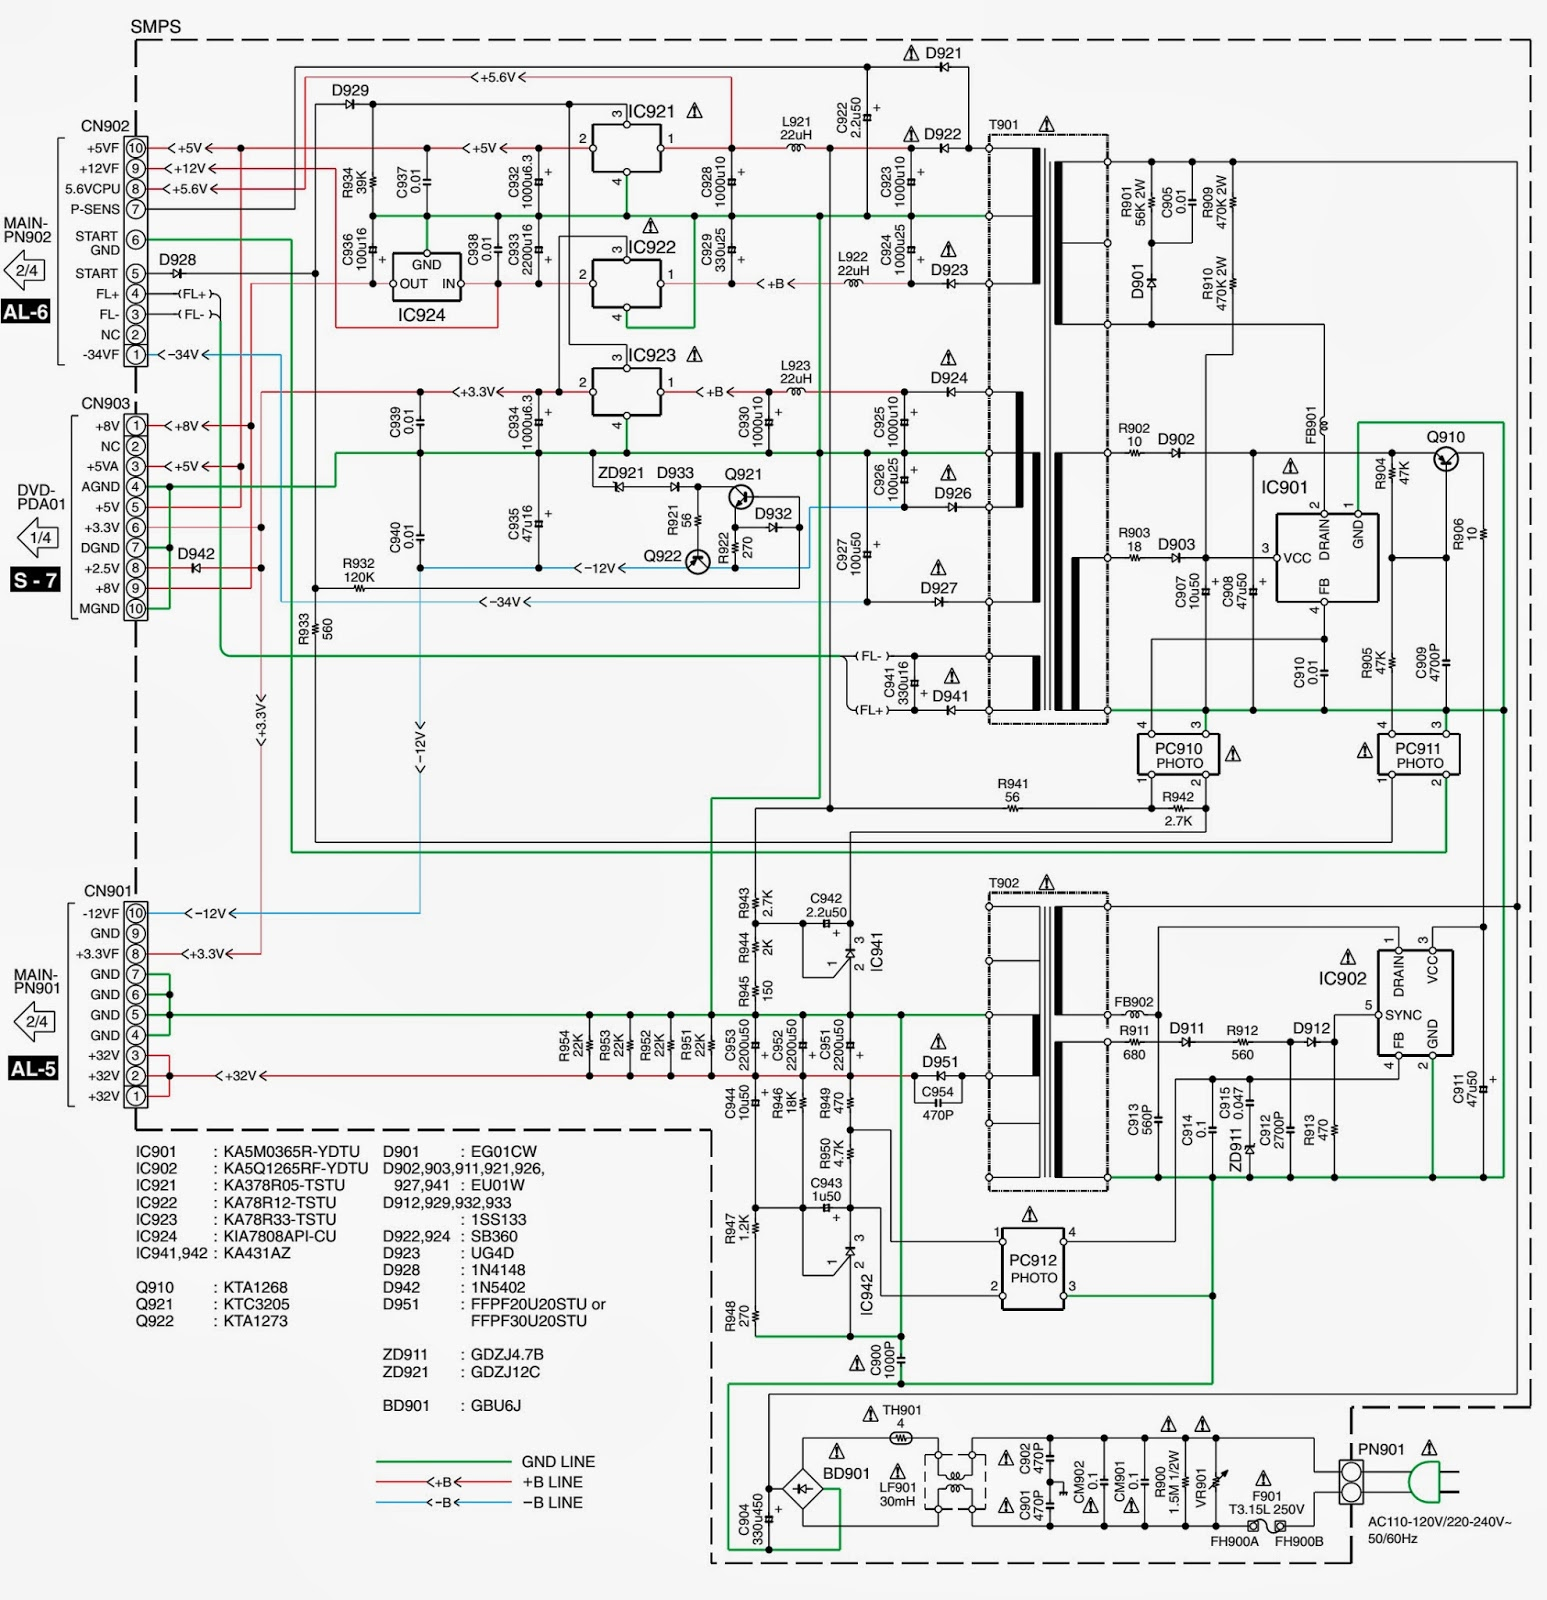 KENWOOD - DVR-6300 - SMPS (Power Supply) SCHEMATIC (Circuit Diagram ...